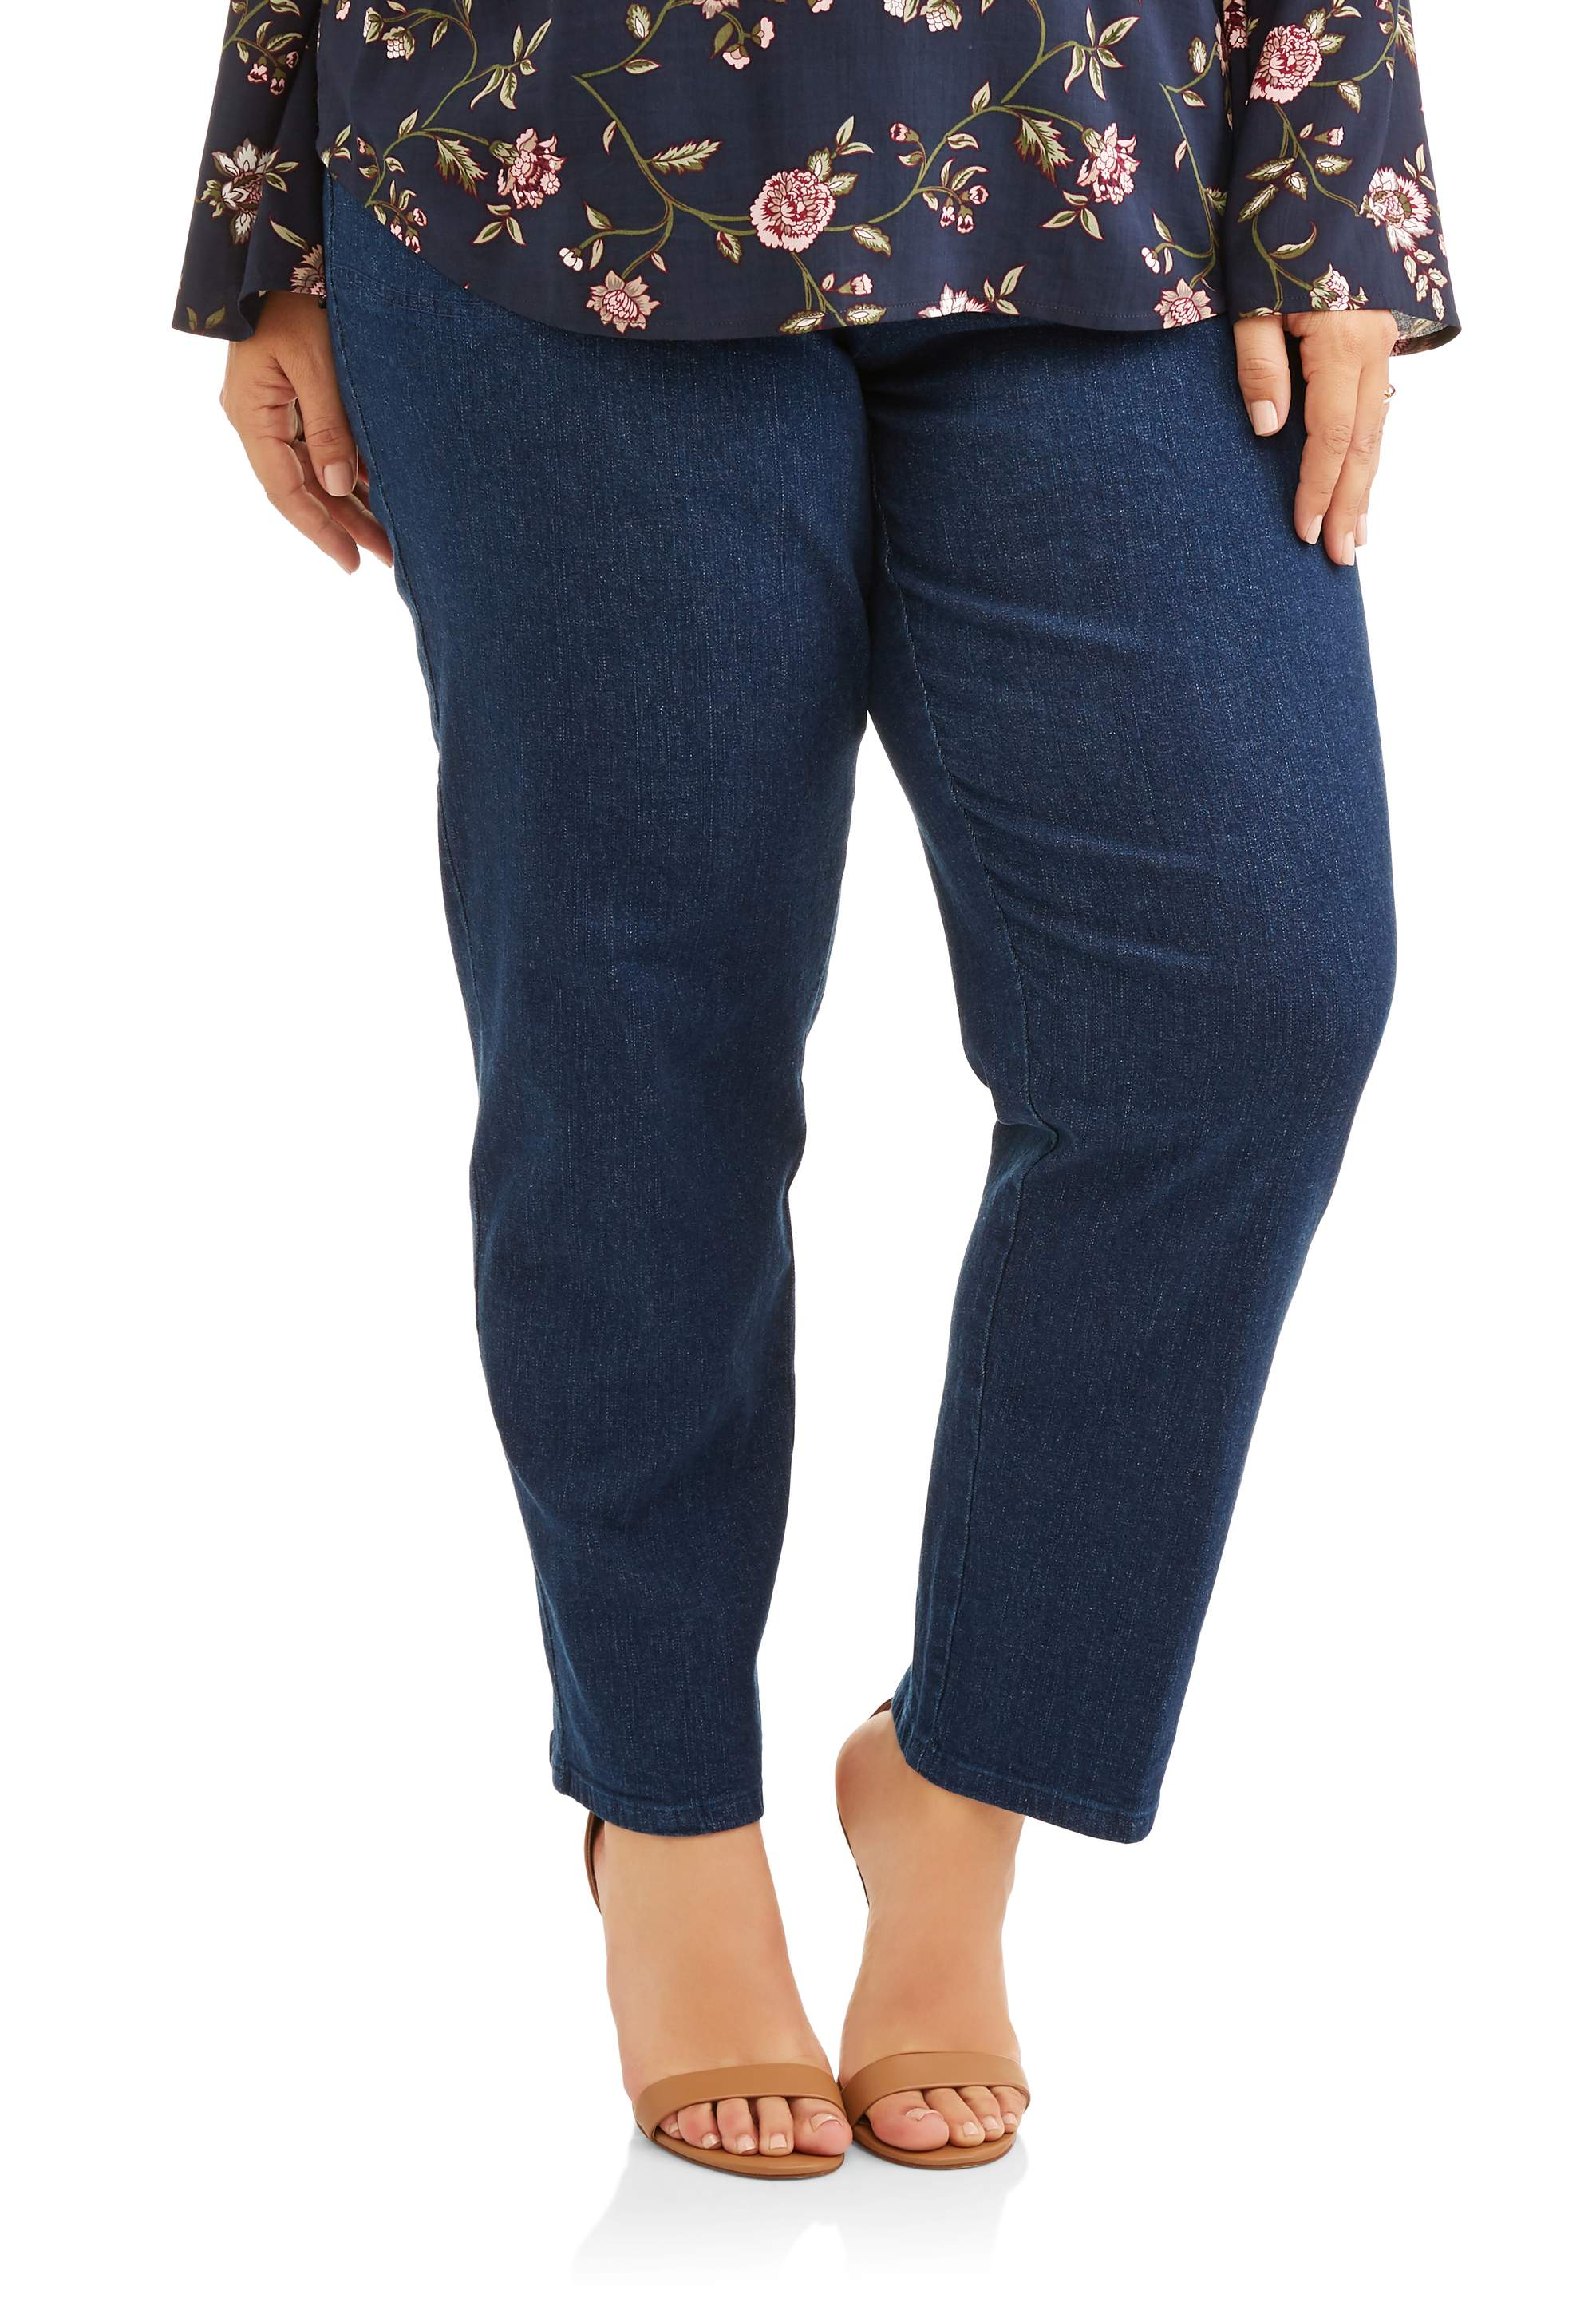 Women's Plus-Size Pull-On Stretch Woven Pants, Available in Regular and Petite Lengths